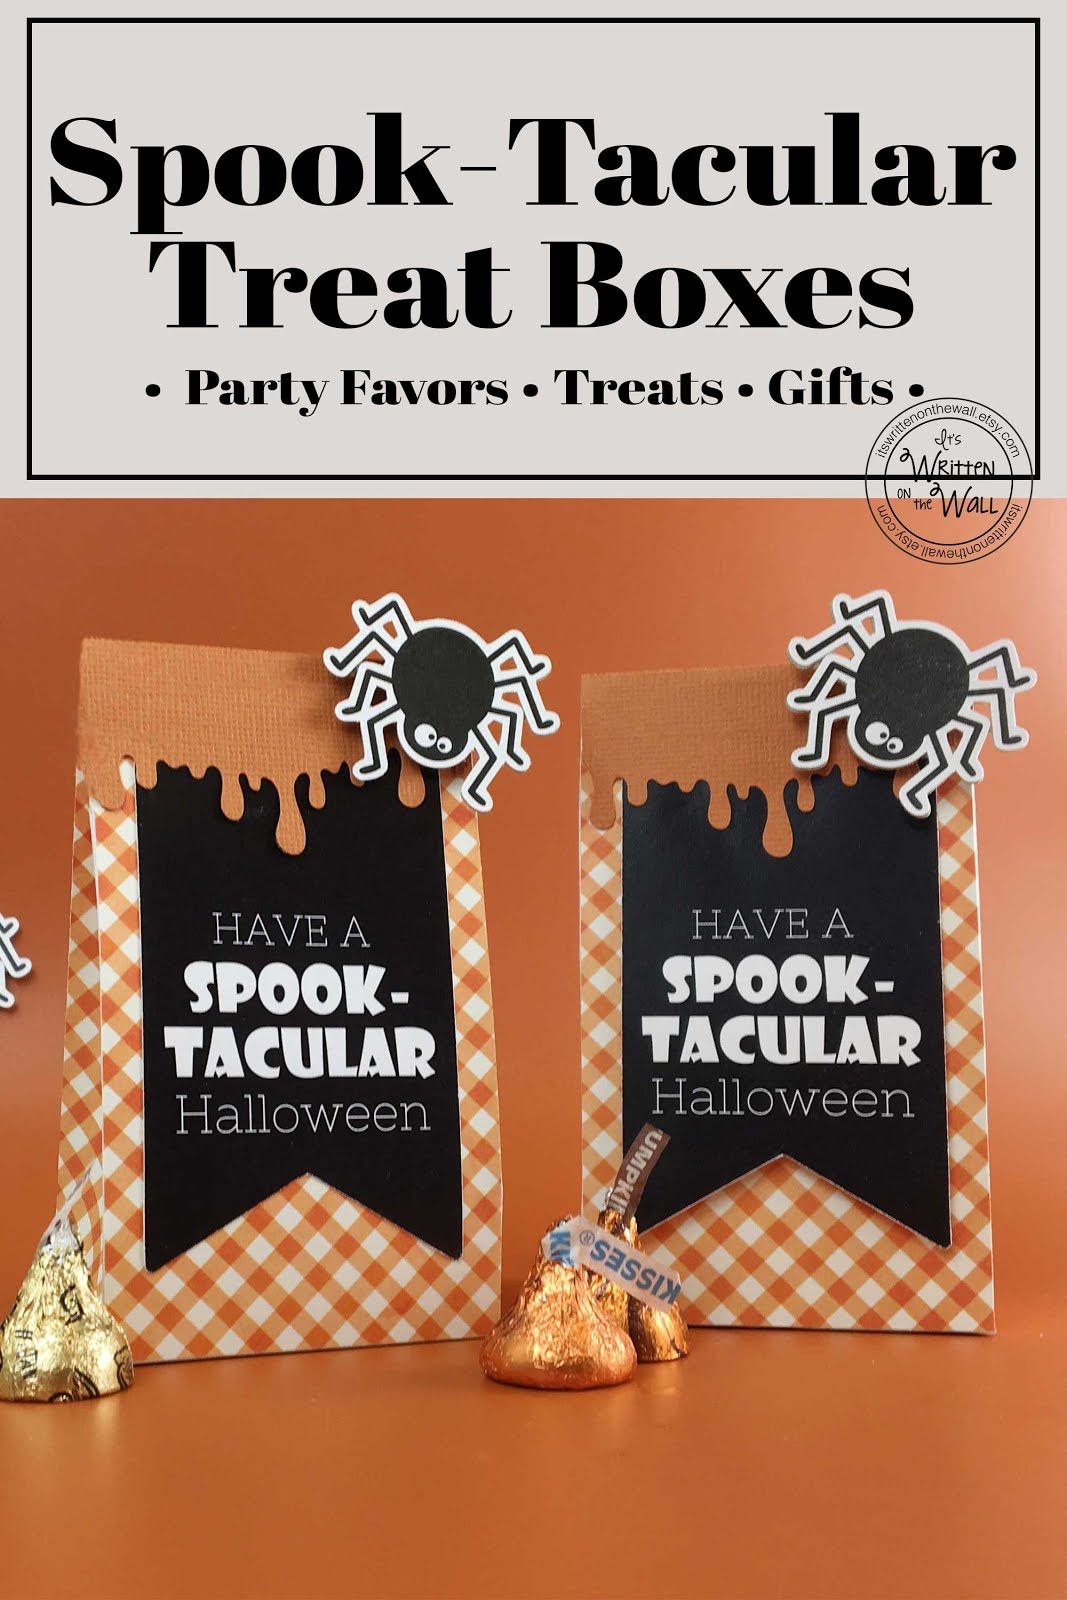 Have a Spook-Tacular Halloween Treat Box